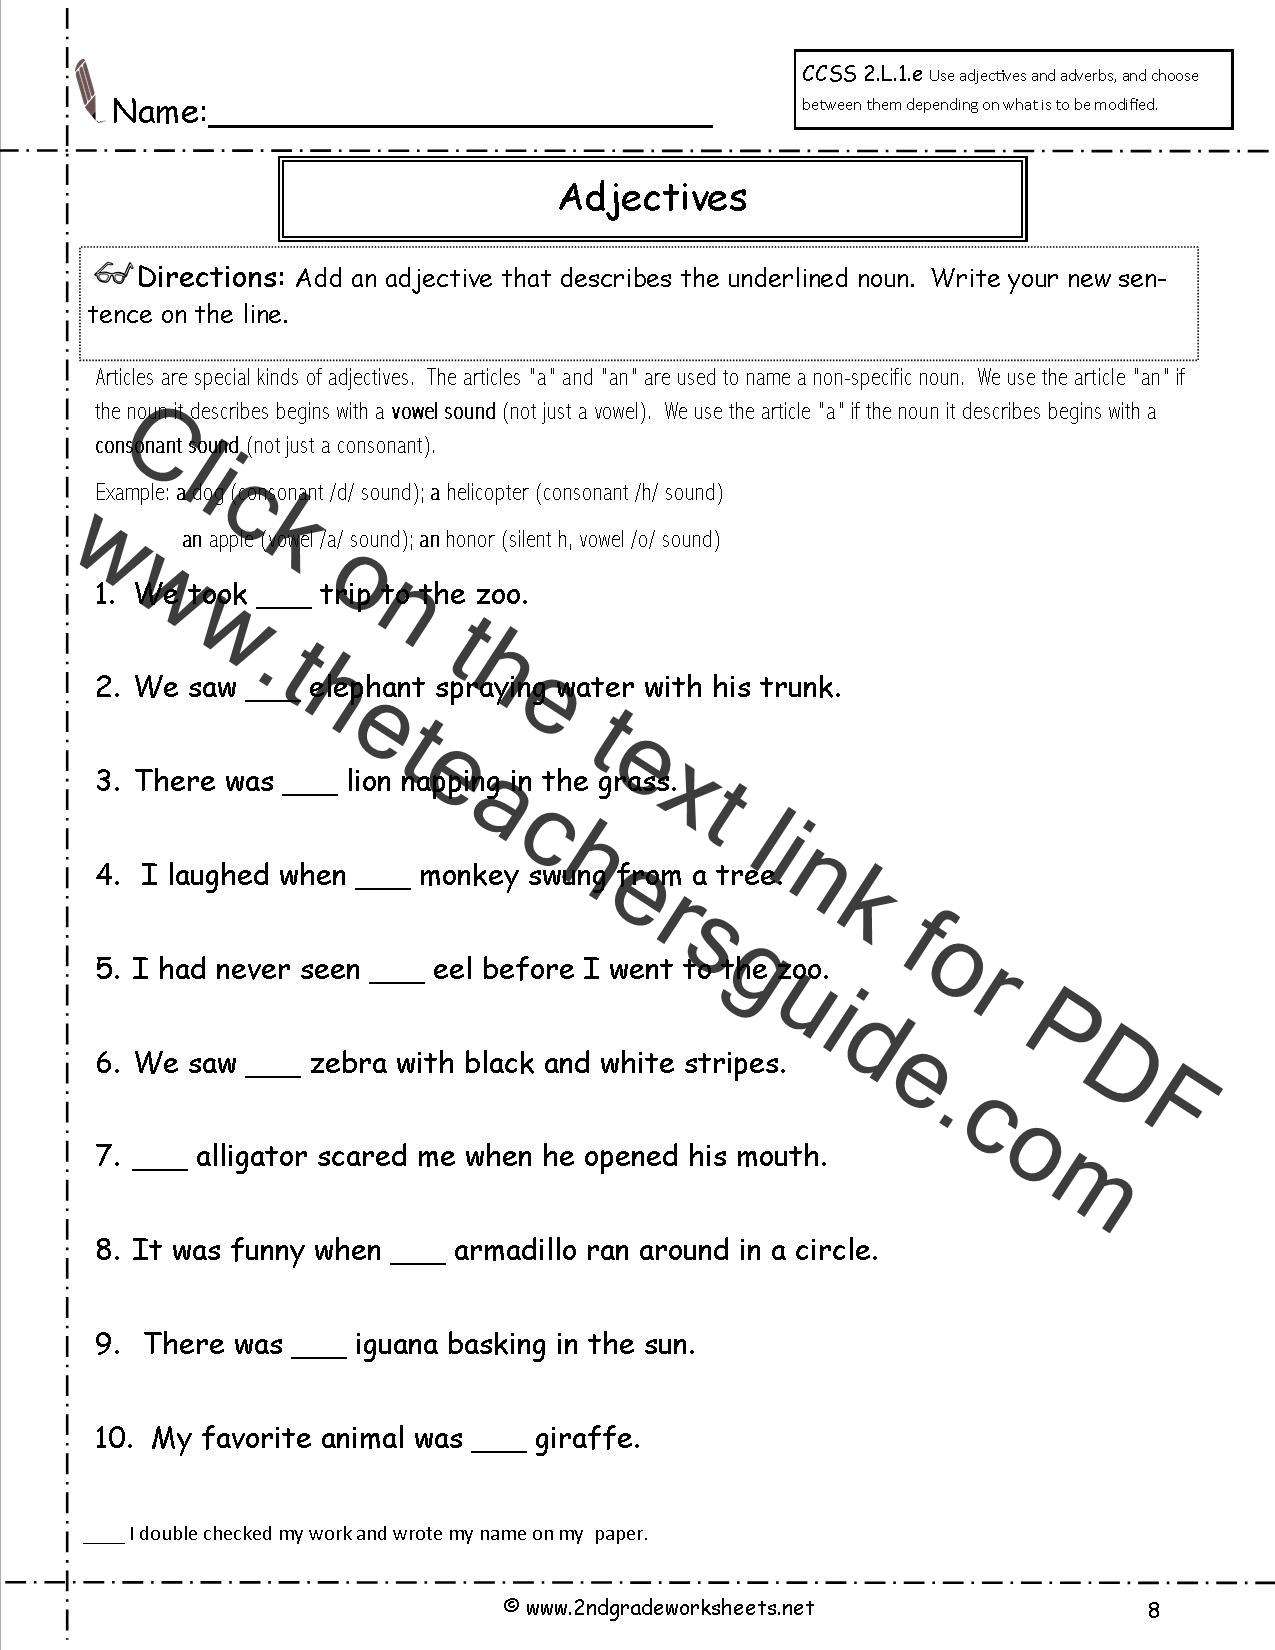 Worksheet Grammar Free Worksheets free languagegrammar worksheets and printouts adjectives worksheets